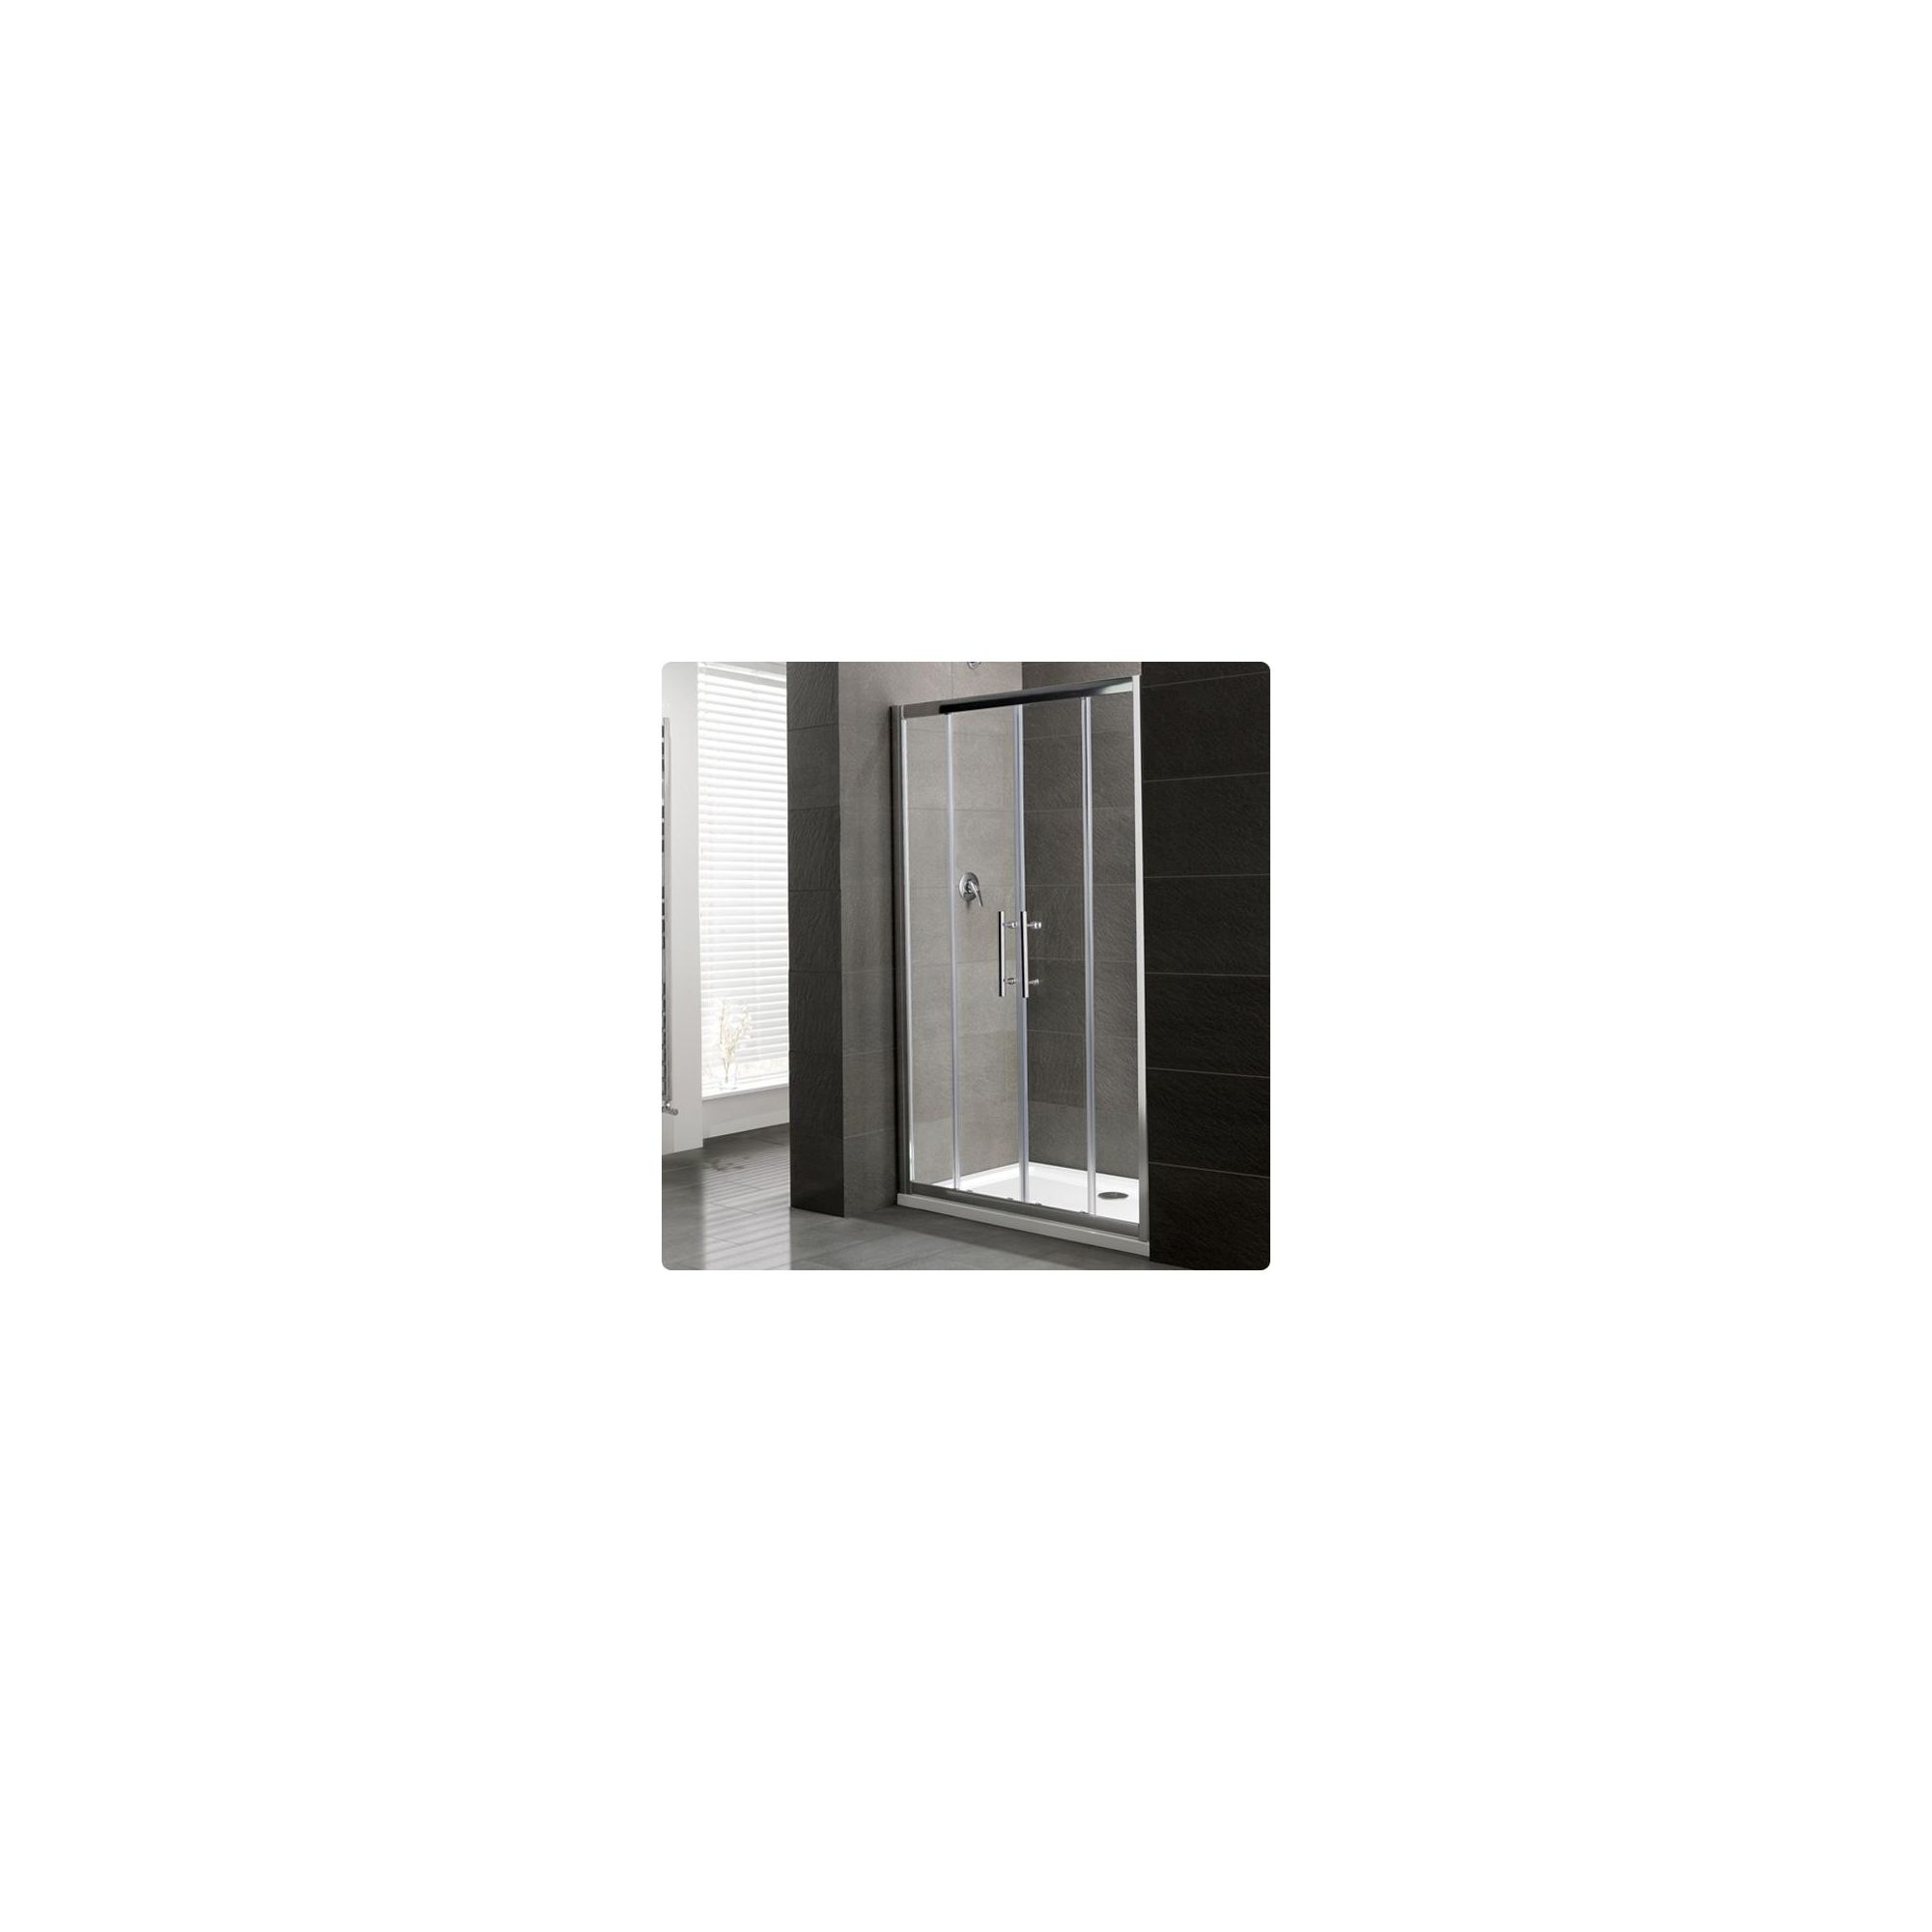 Duchy Select Silver Double Sliding Door Shower Enclosure, 1600mm x 800mm, Standard Tray, 6mm Glass at Tesco Direct